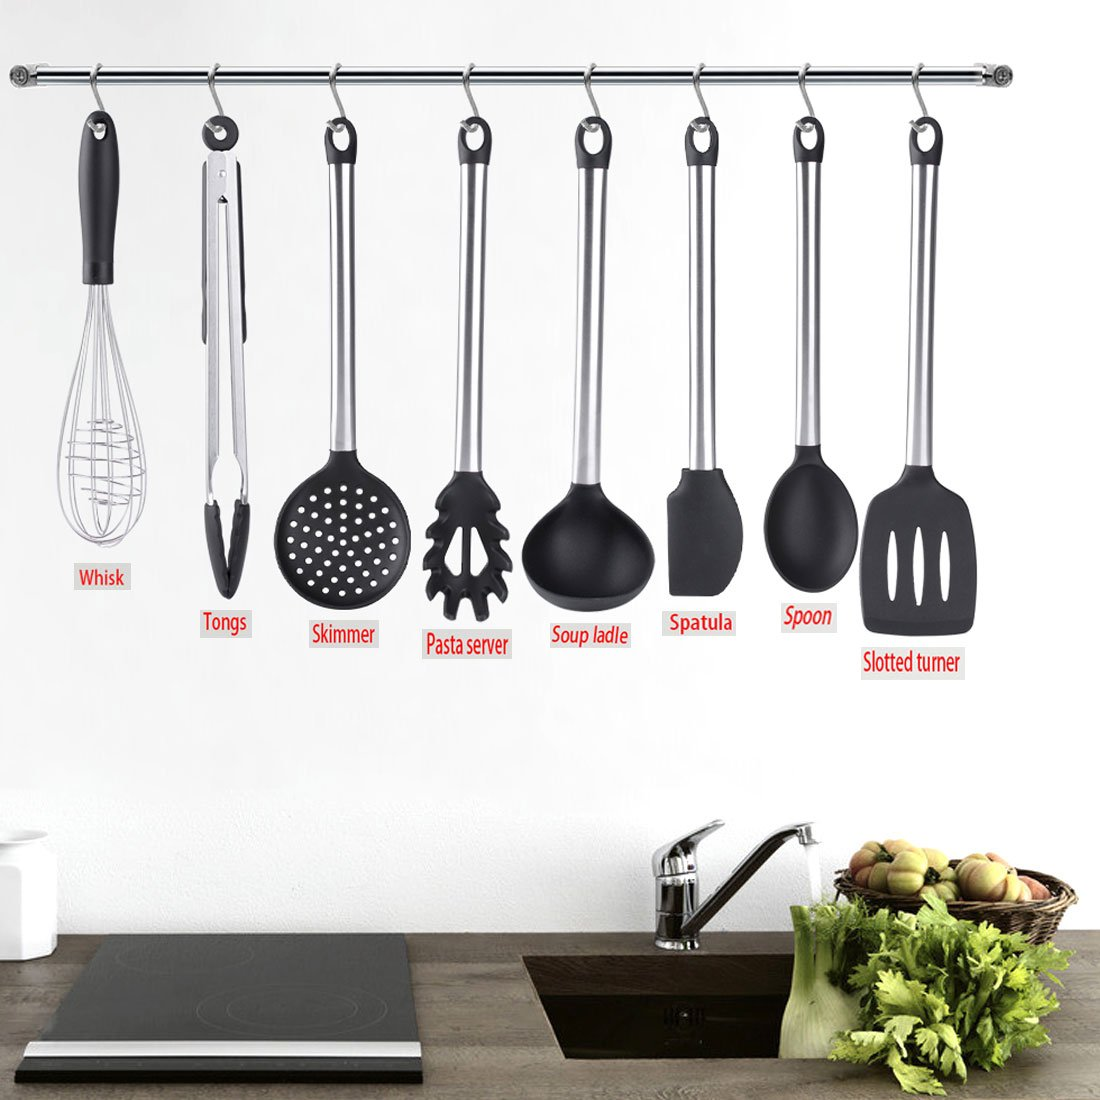 Cooking Utensils, Wifond Kitchen Utensils Set, 8-piece Silicone Stainless Steel Cooking Tools, Gadgets Set - Tongs, Spatula, Slotted Turner, Soup Ladle, Skimmer, Spoon, Pasta Server, Whisk